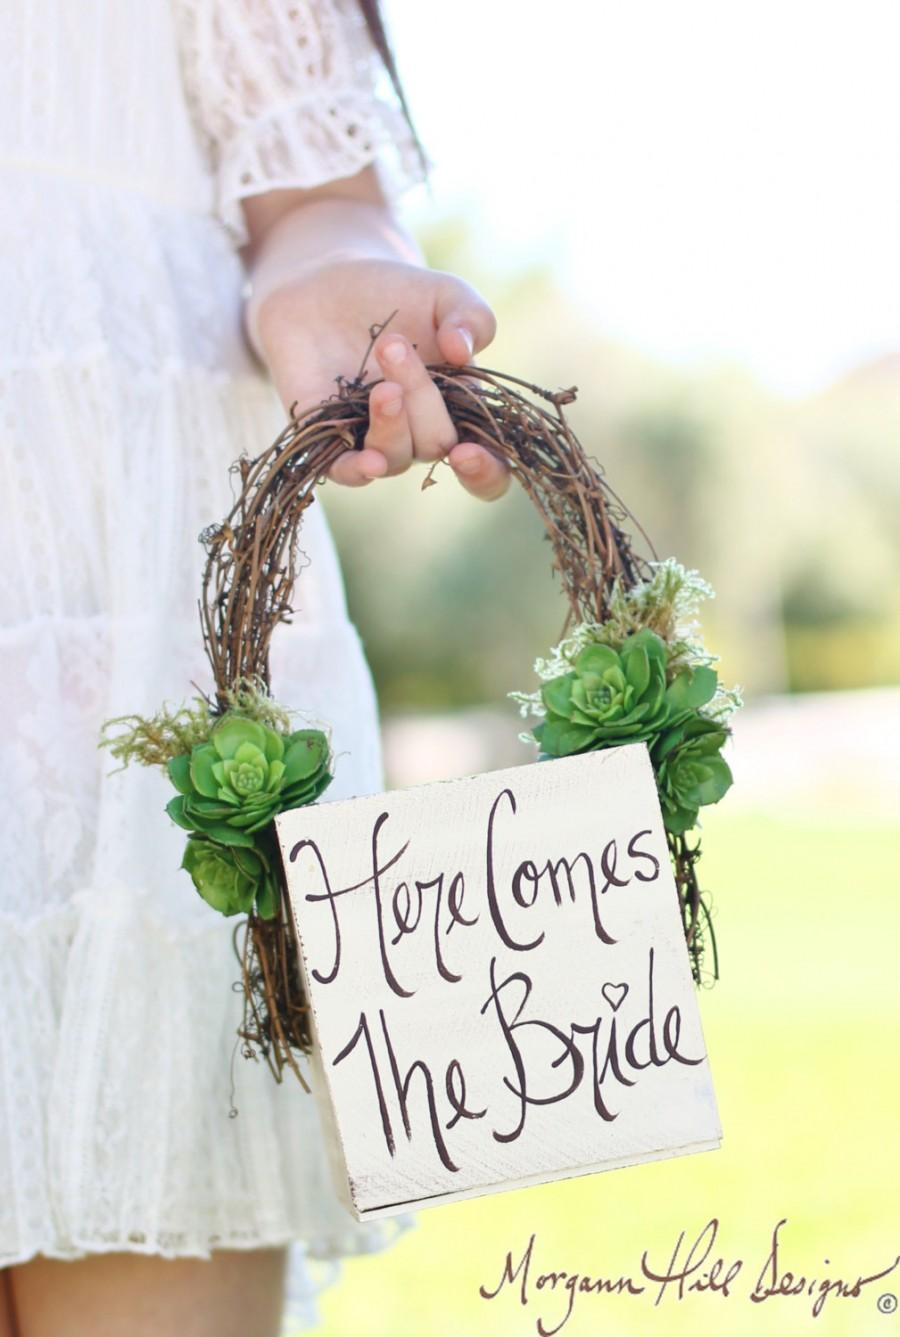 Wedding - Flower Girl Basket Succulents Grapevines Rustic Chic Wedding Here Comes The Bride Sign  (Item Number MMHDSR10011 )